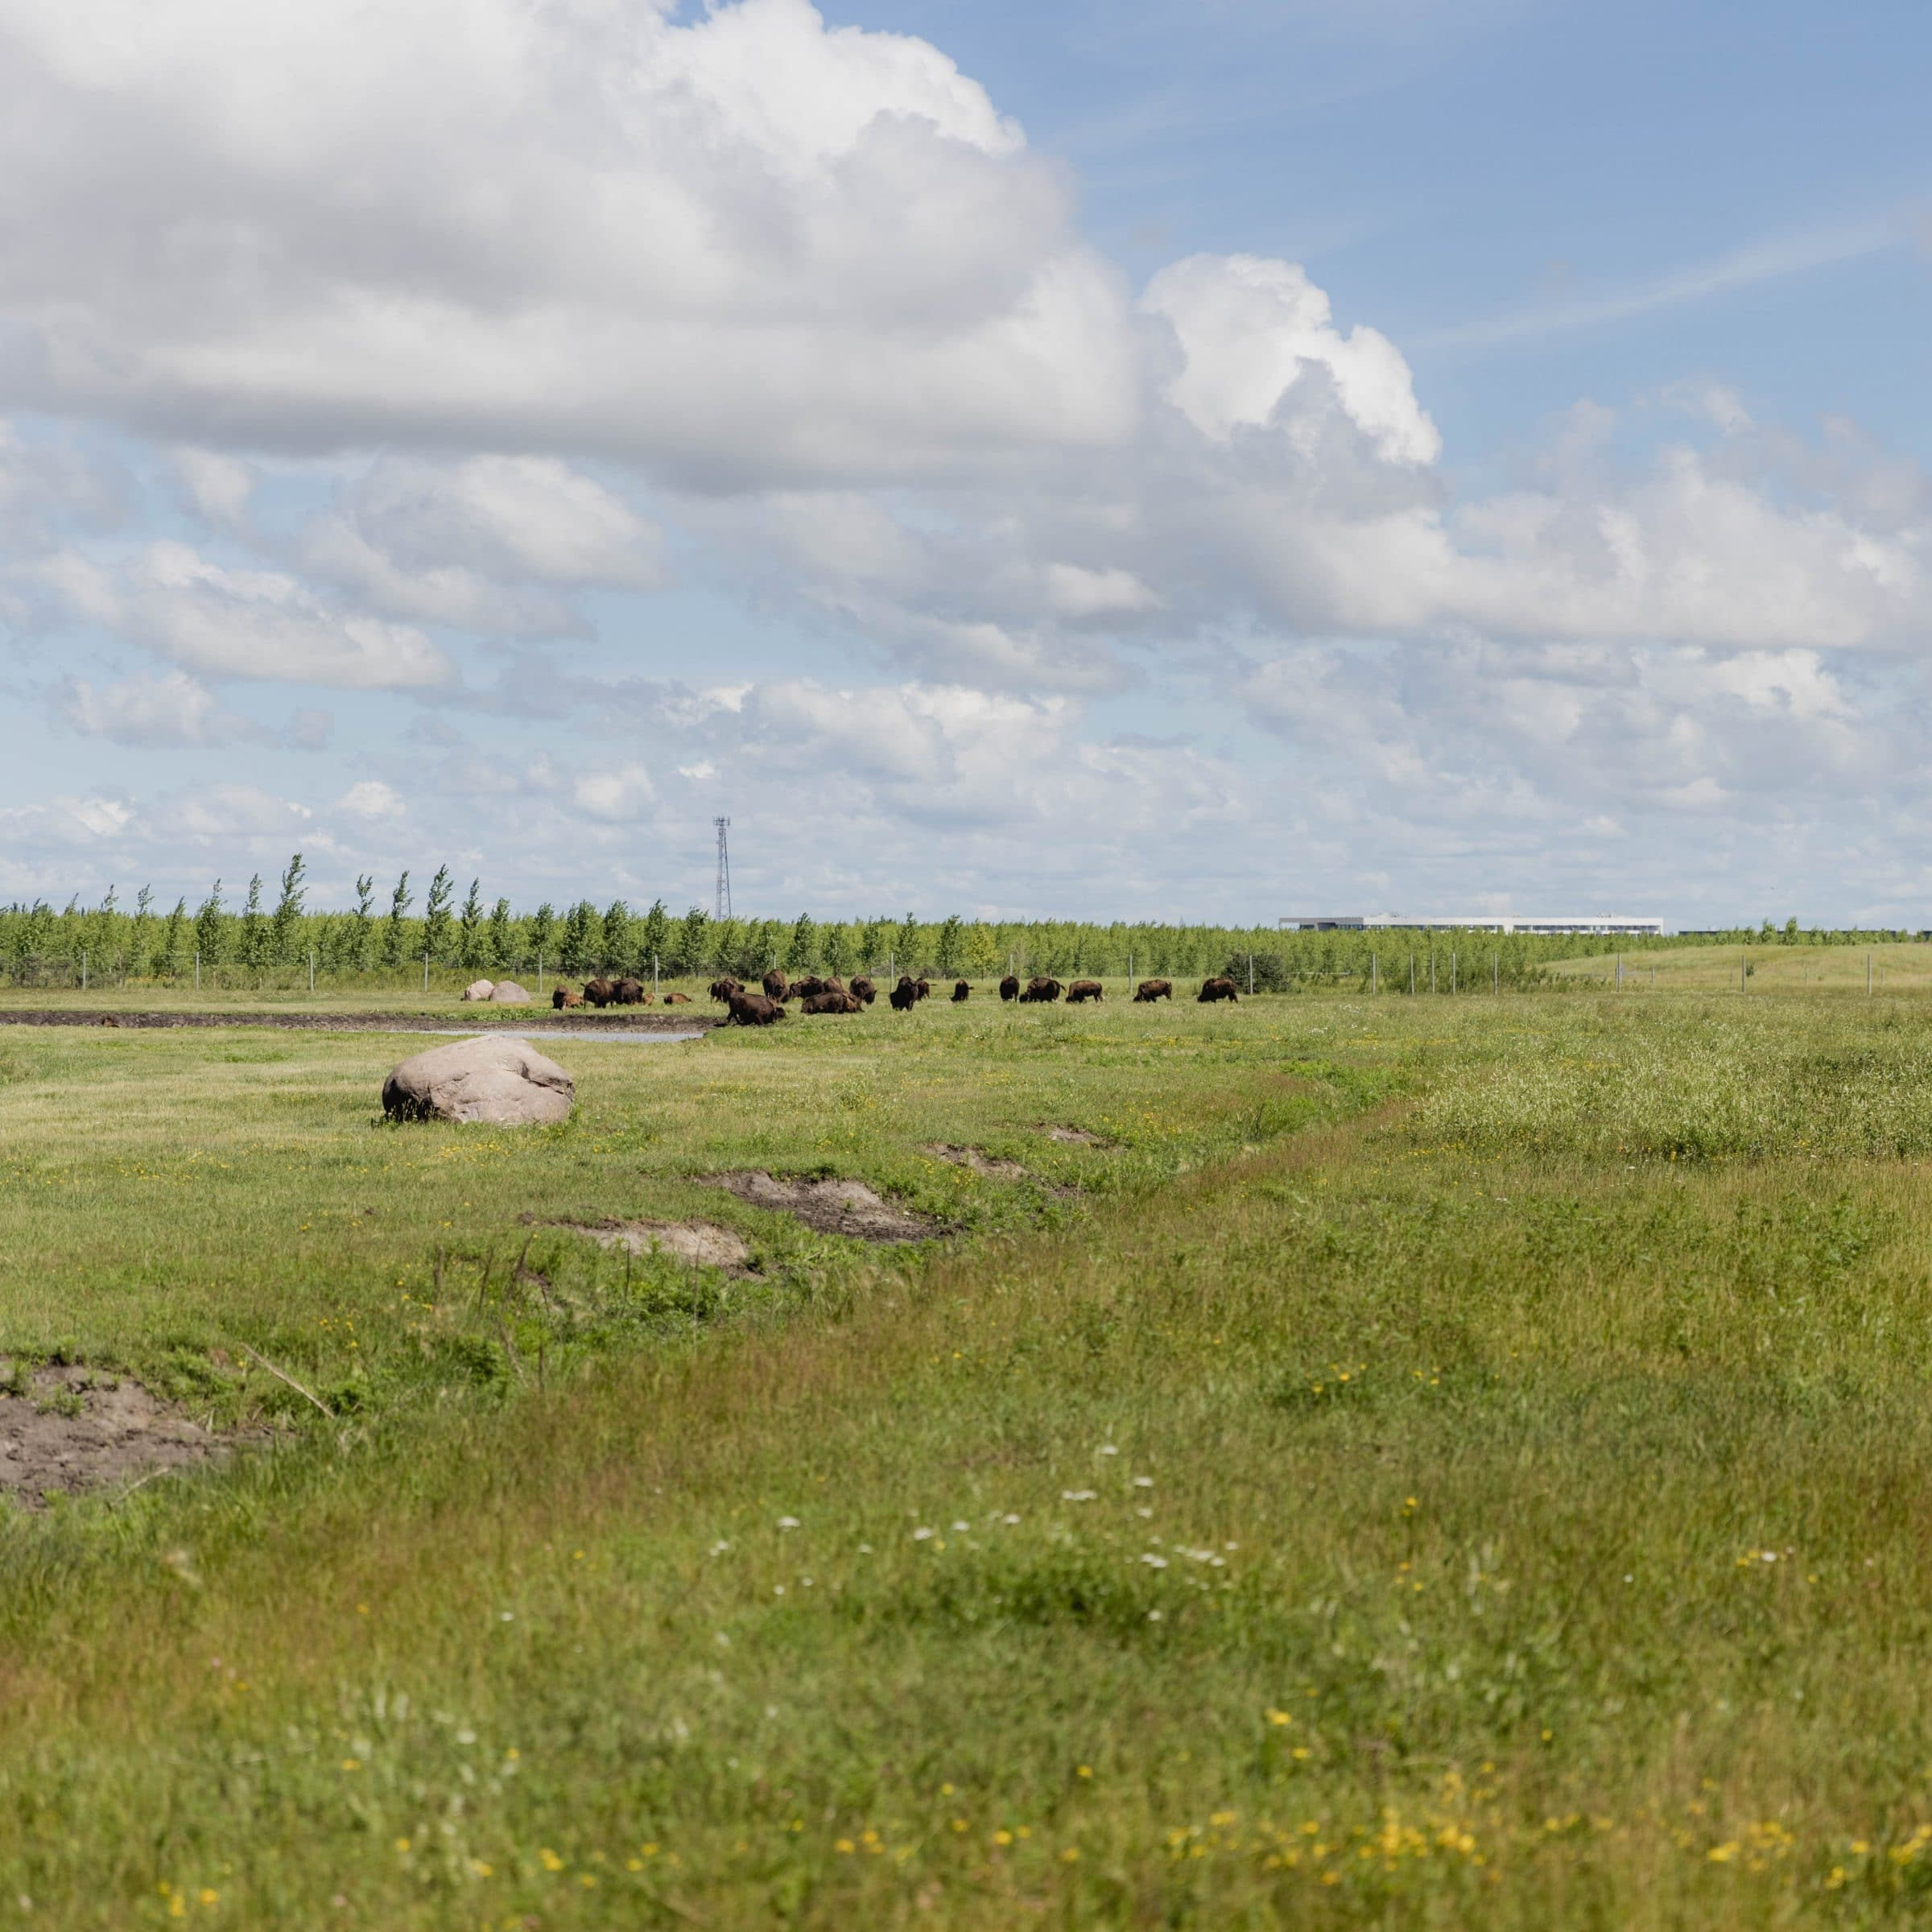 A grass prairie with bison in the distance in summer.